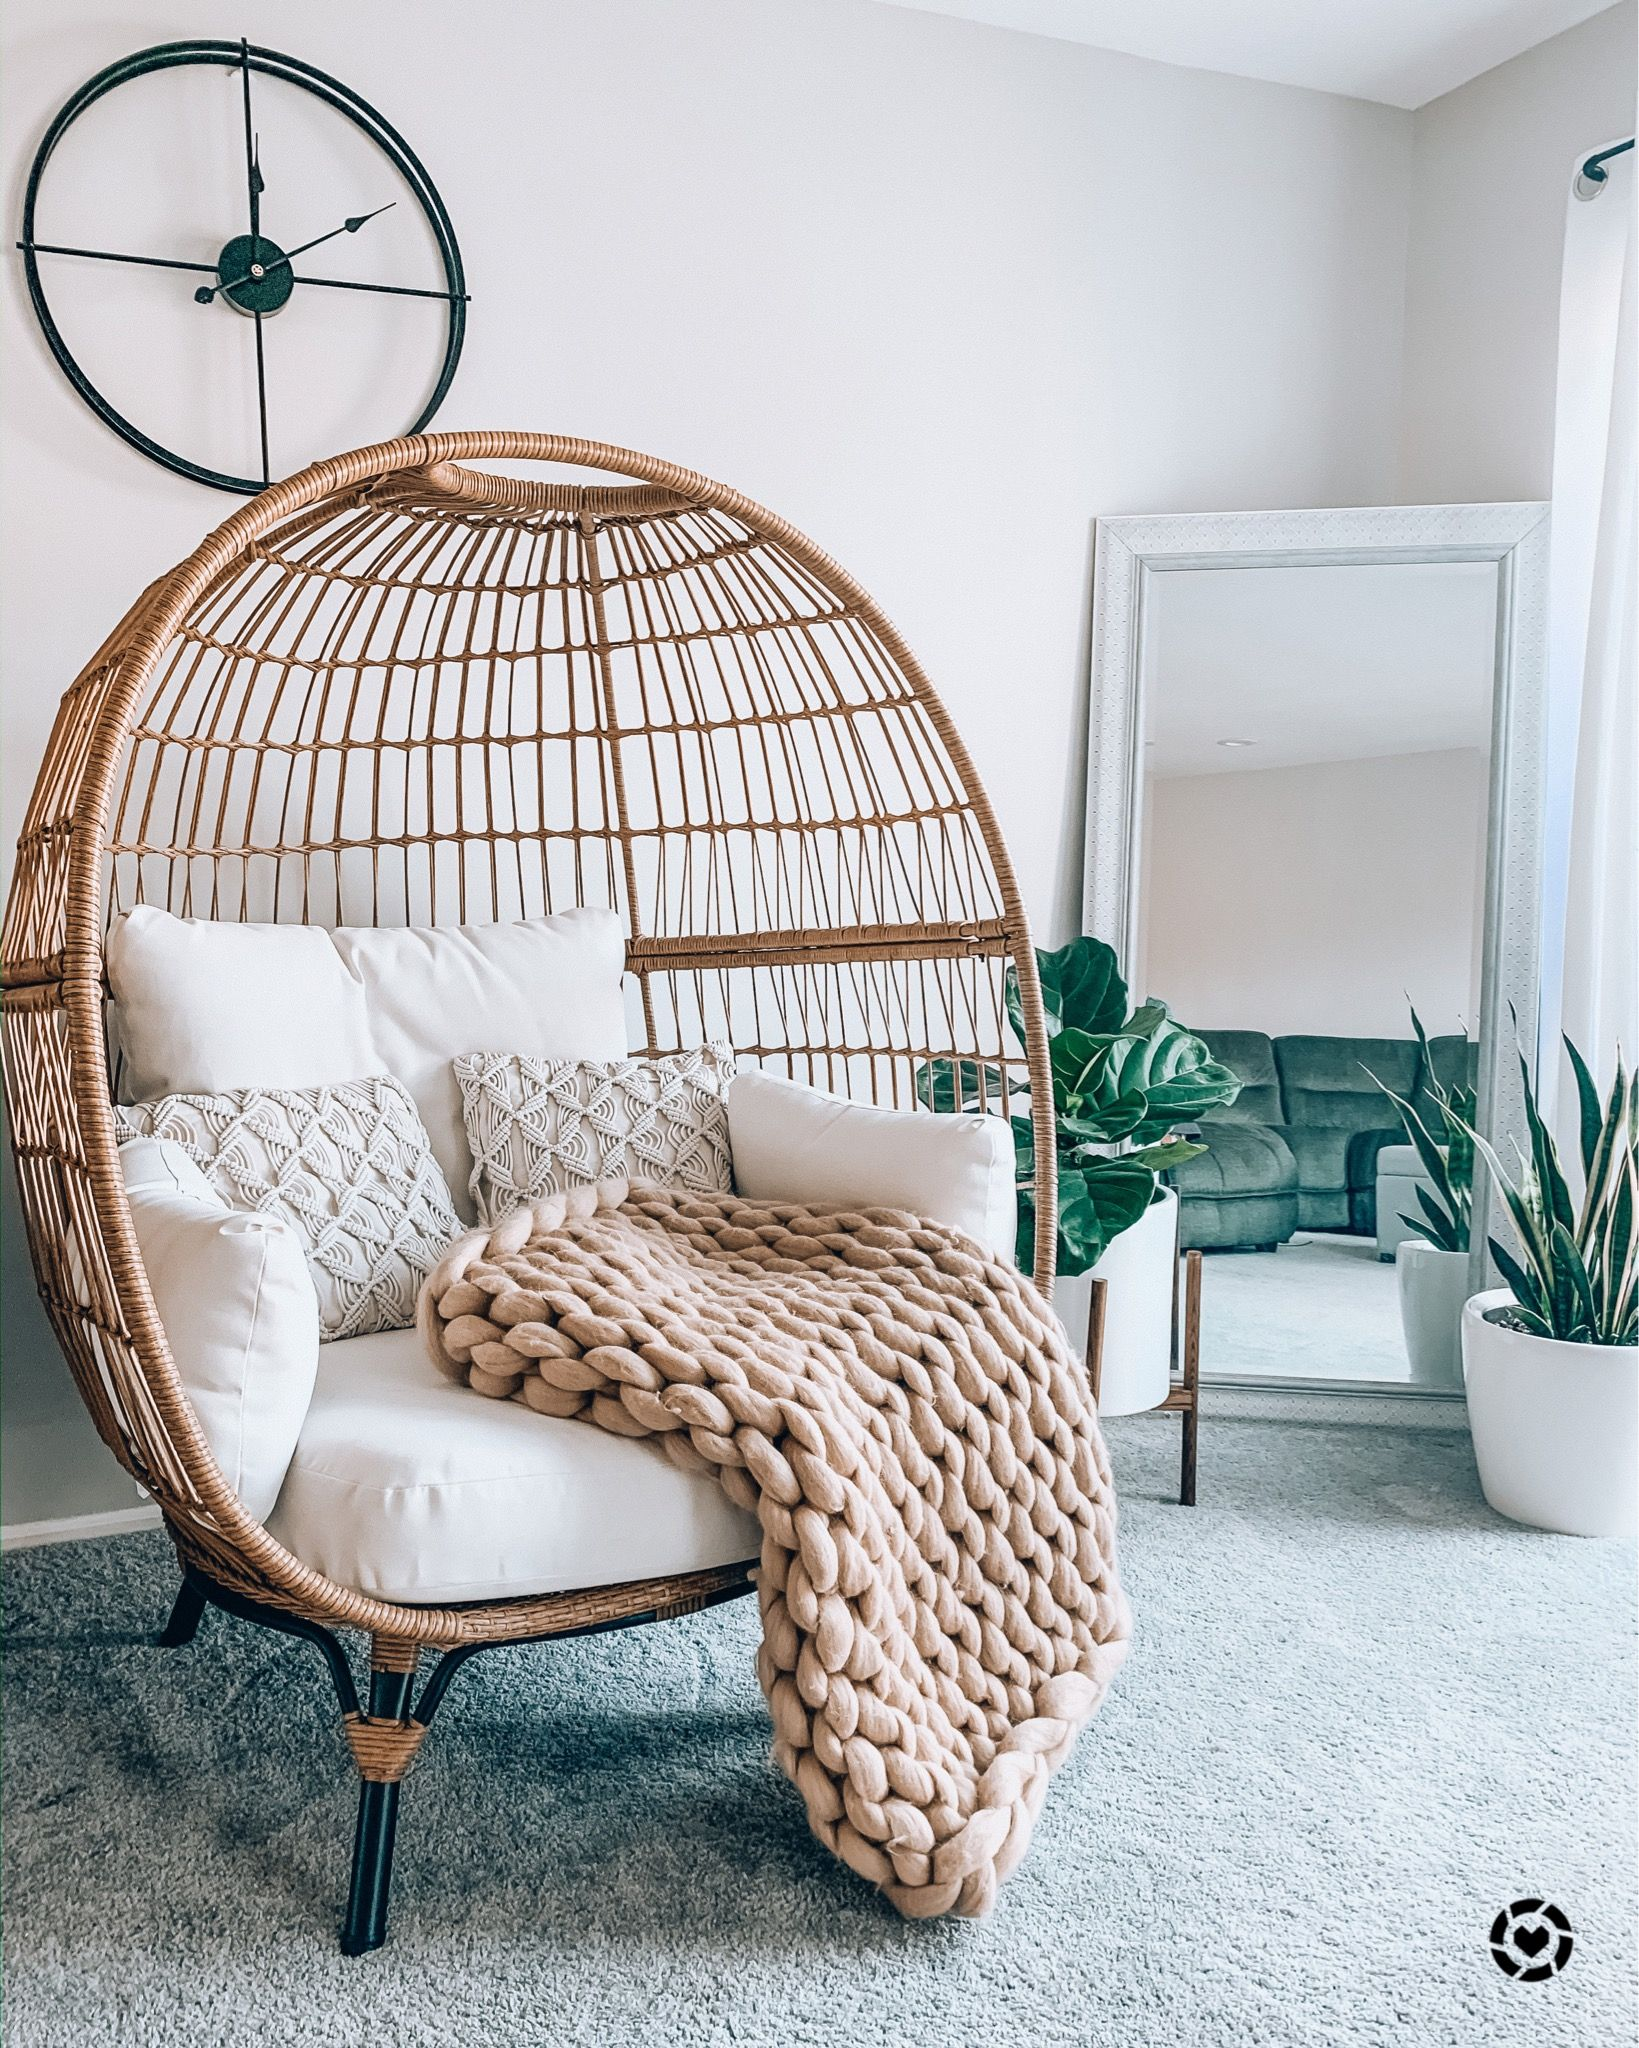 Living Room Egg Chair Liketoknow It In 2020 Room Swing Living Room Corner Room Ideas Bedroom